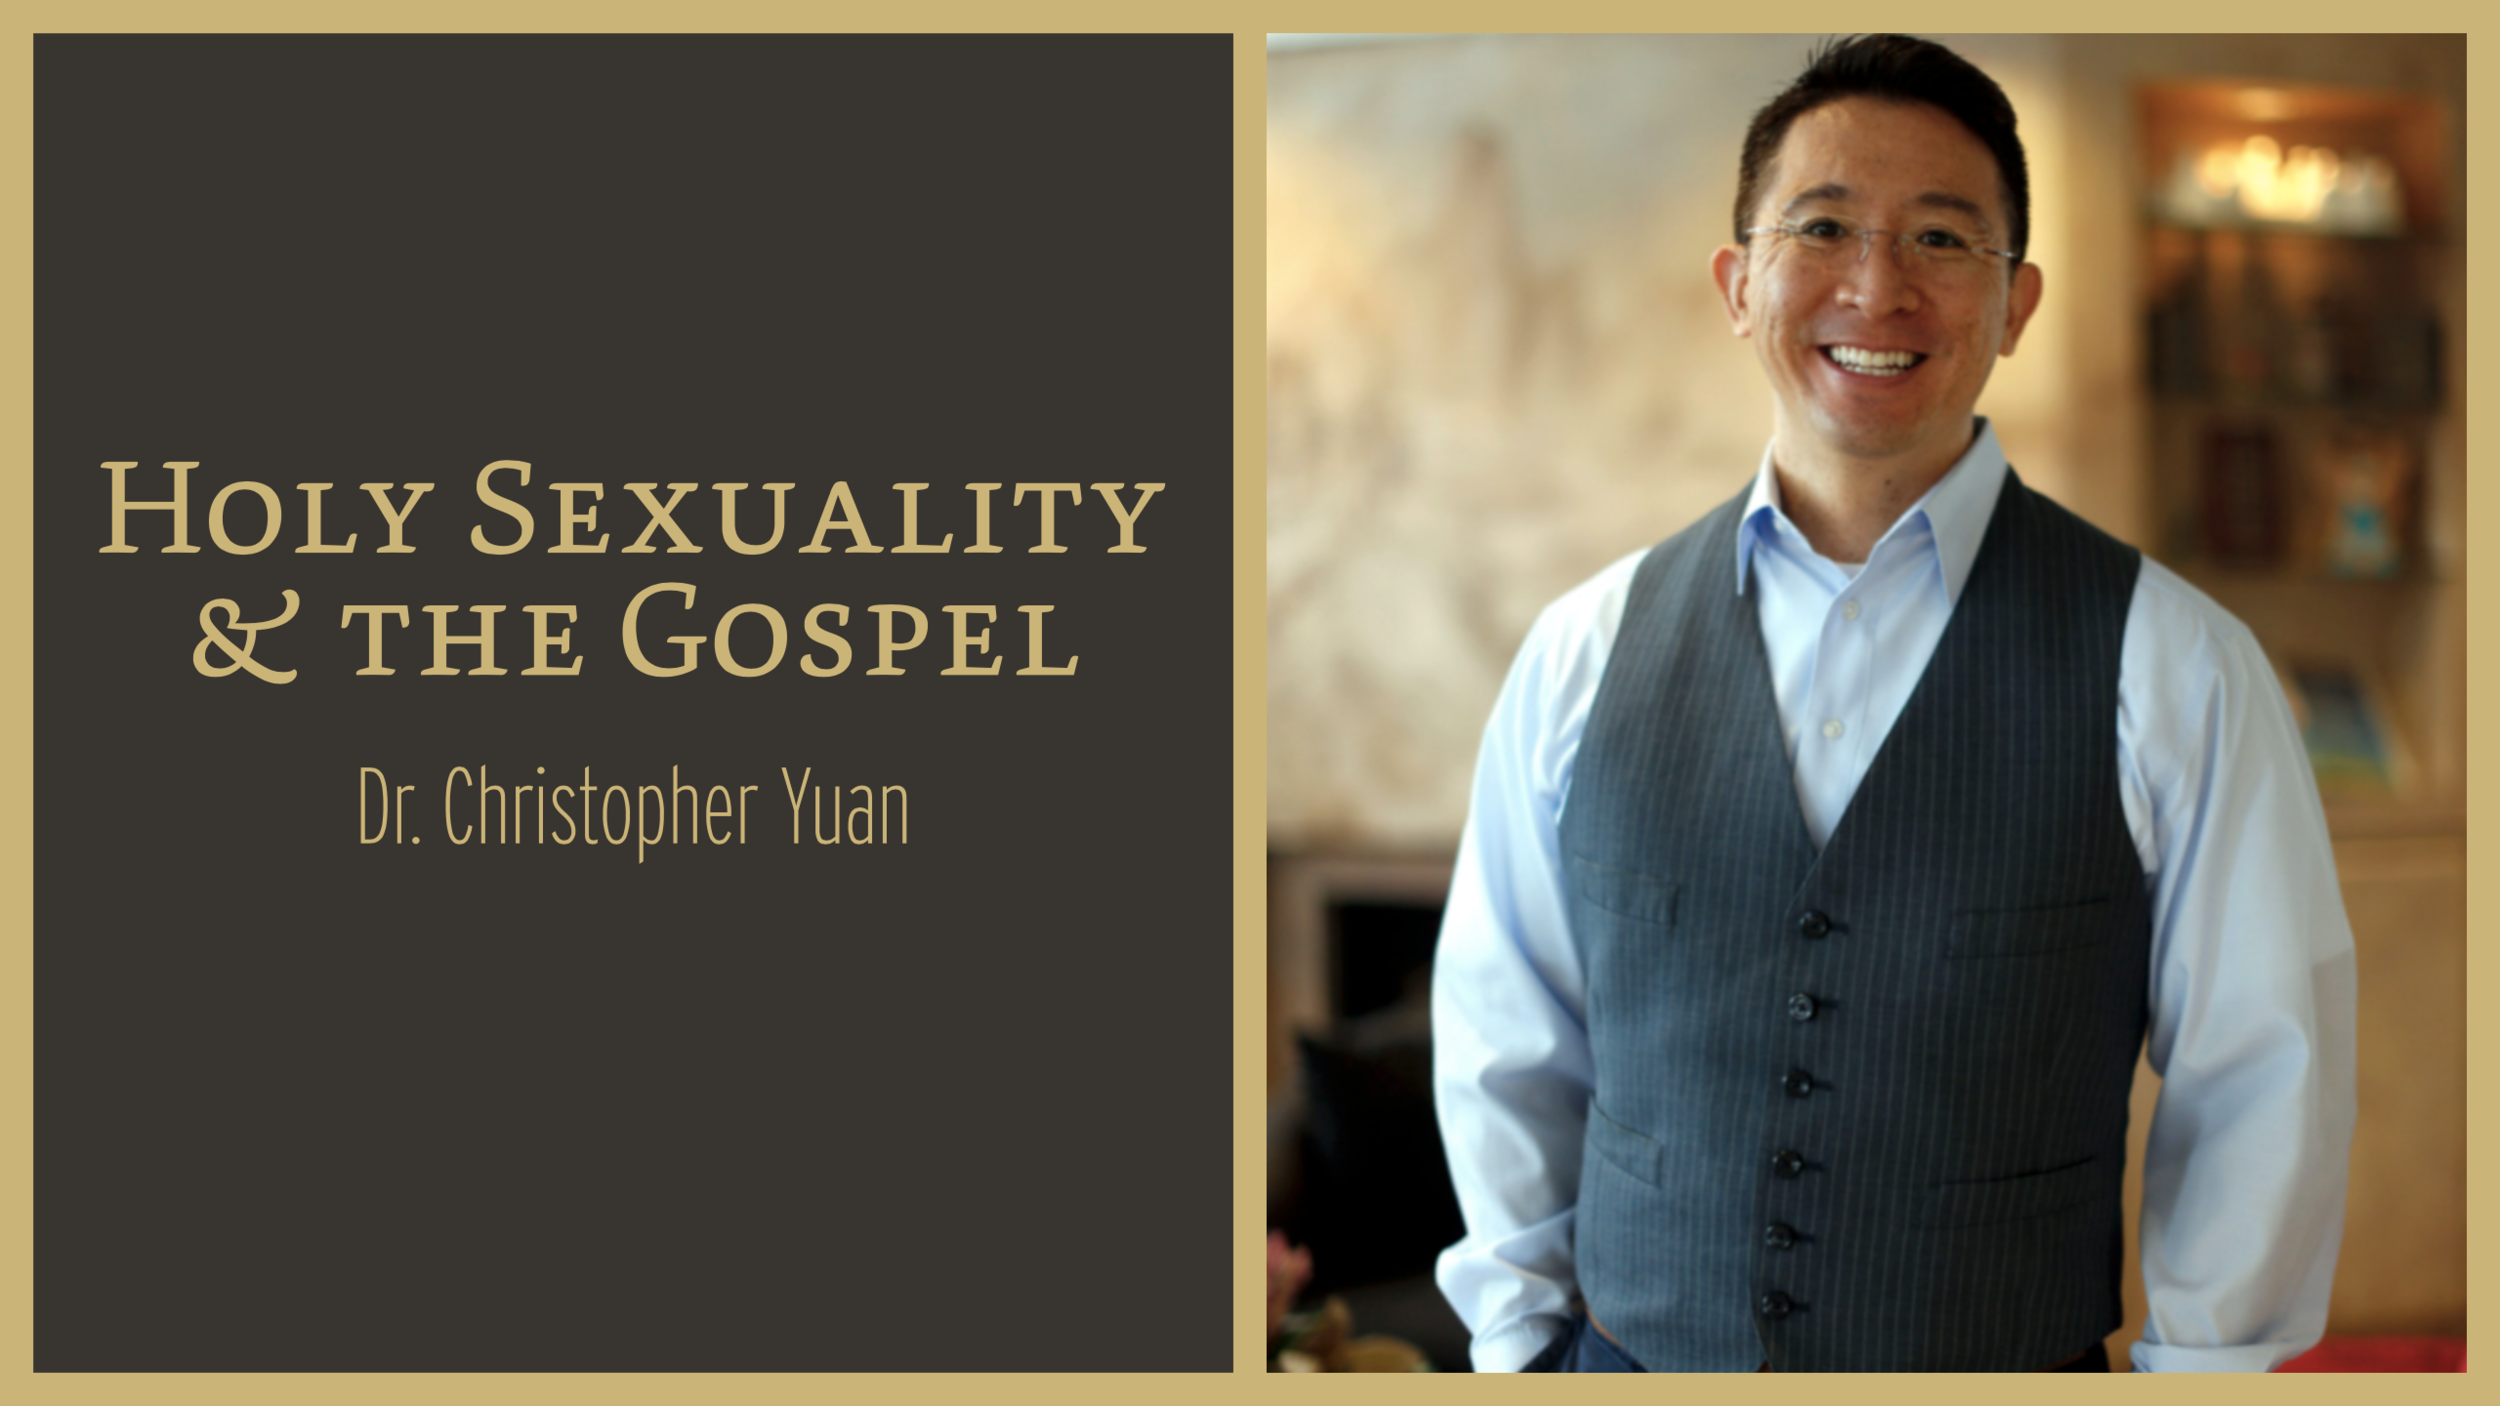 Holy Sexuality & the Gospel - Dr. Christopher Yuan